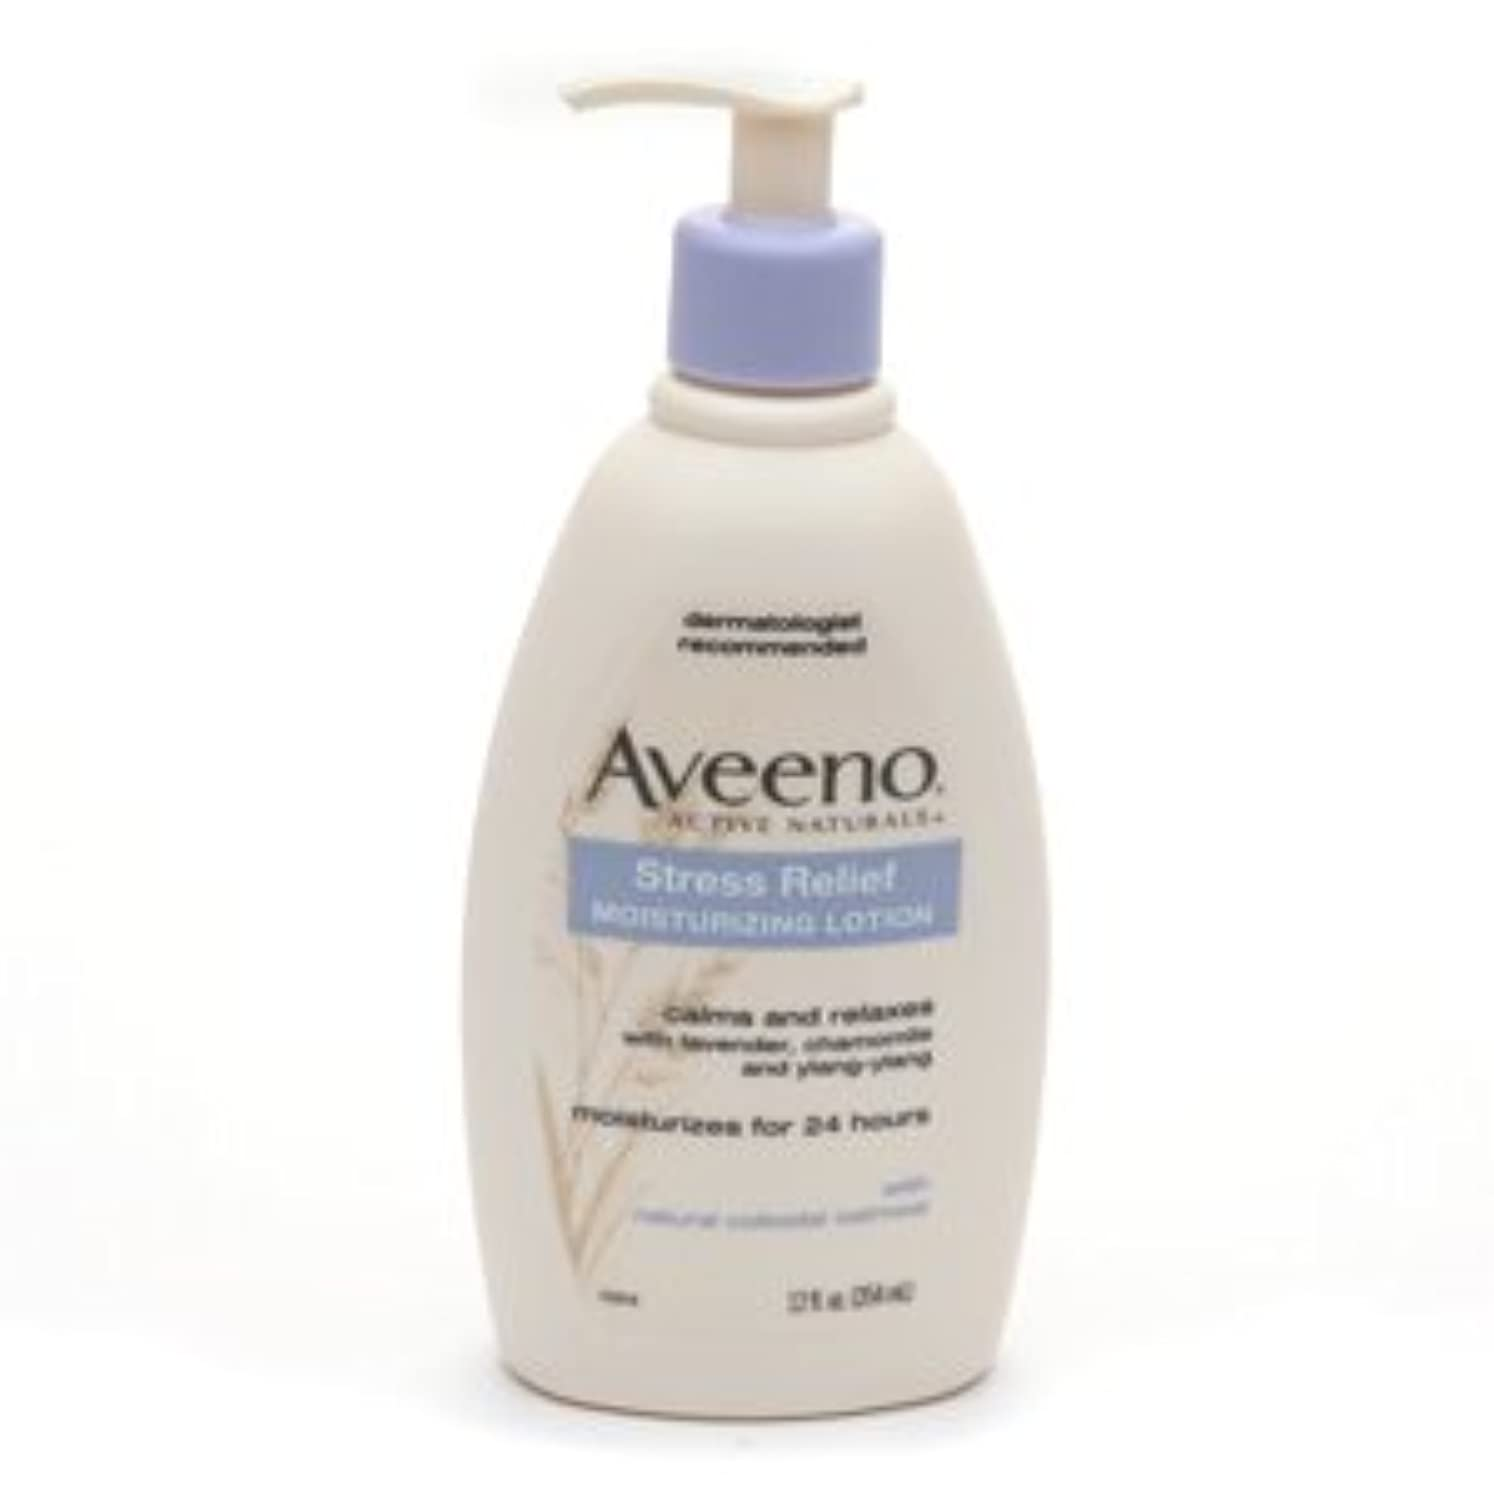 応用予防接種する回転Aveeno - Stress Relief Moisturizing Lotion - 12 fl oz (354 ml)